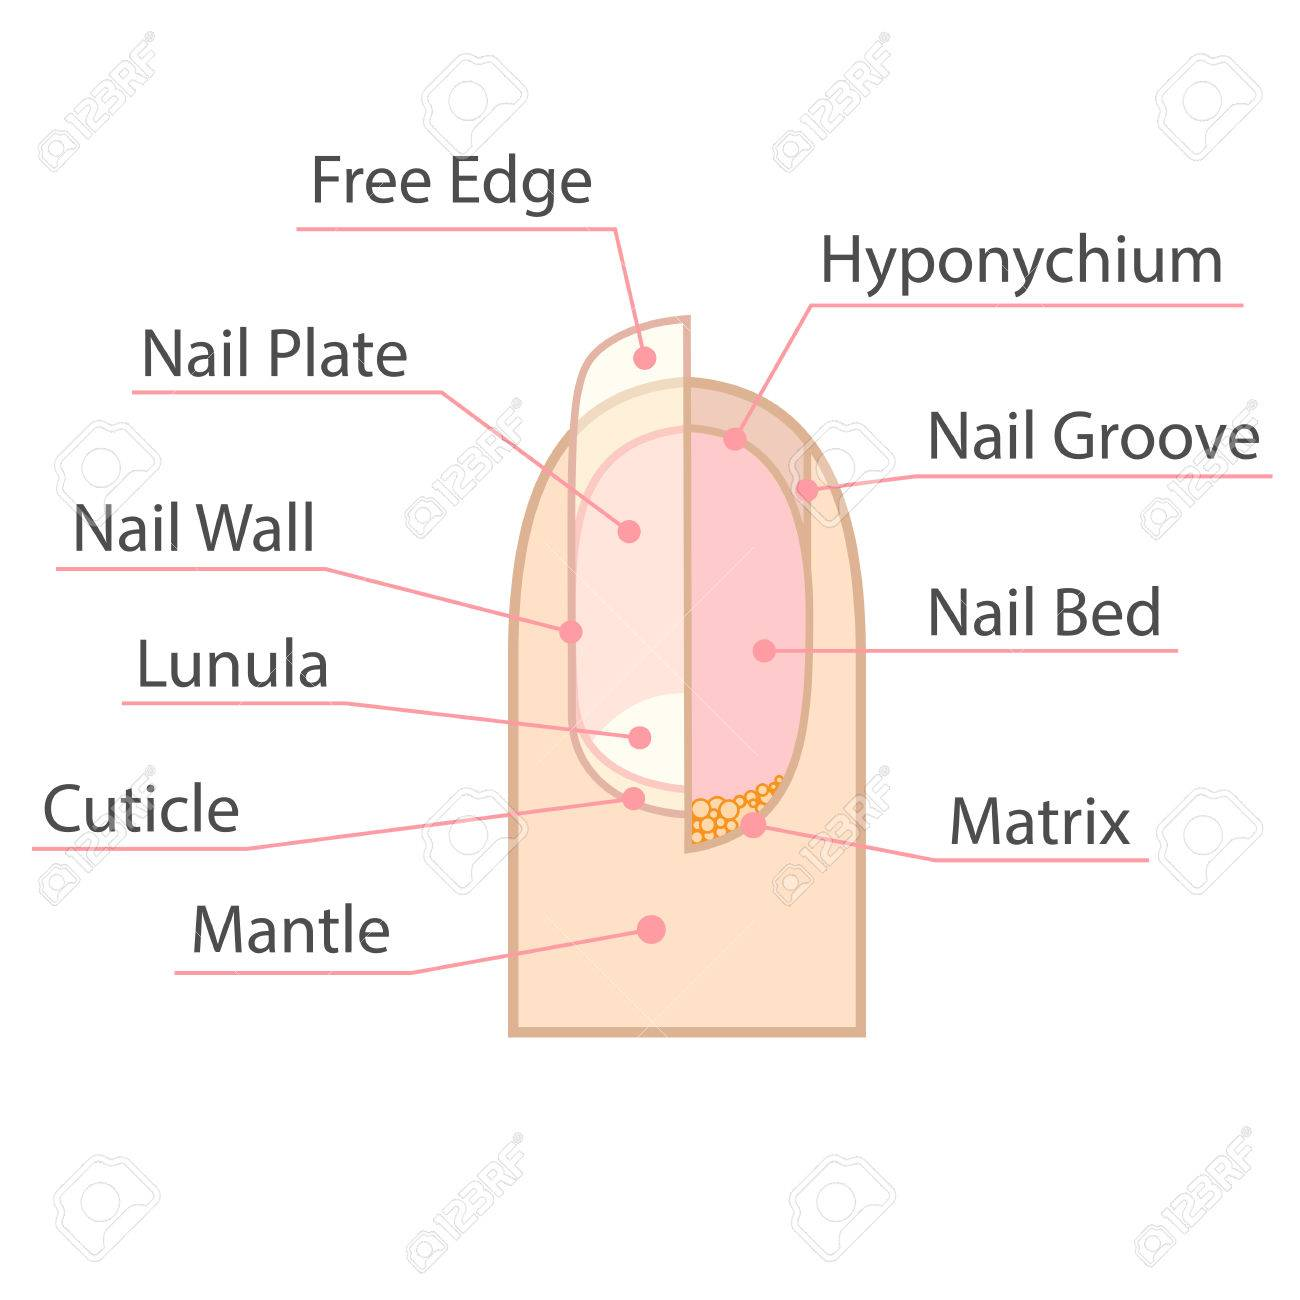 Structure And Anatomy Of Human Nail Color Medical Scheme On